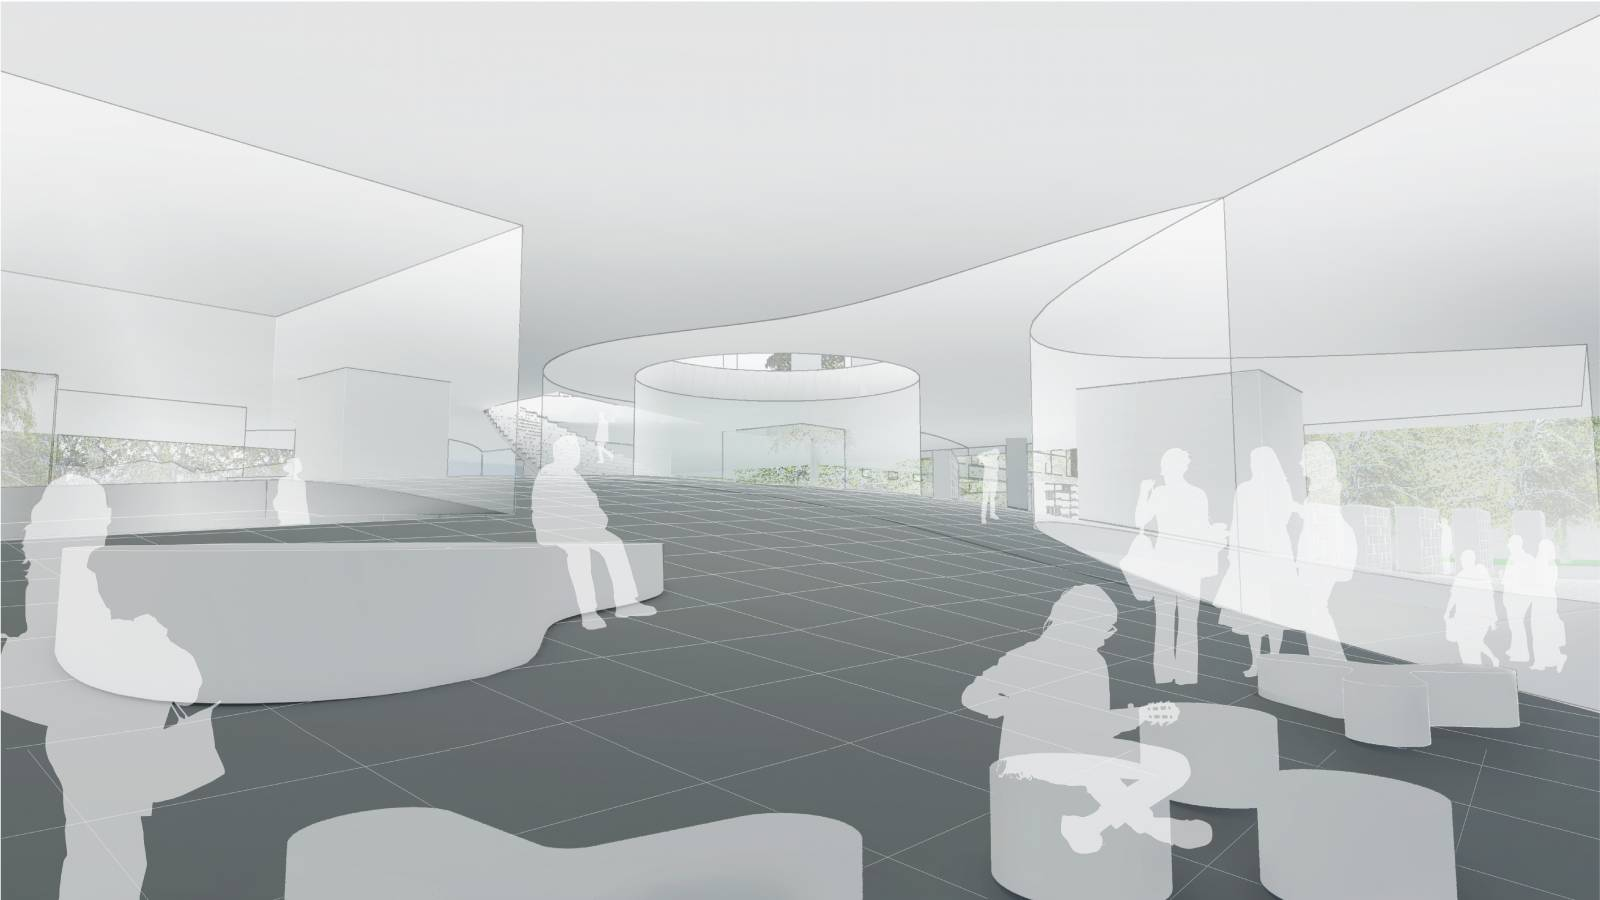 INTERIOR PERSPECTIVE 02 - NEW AARCH – FLYING CARPET - SPOL Architects